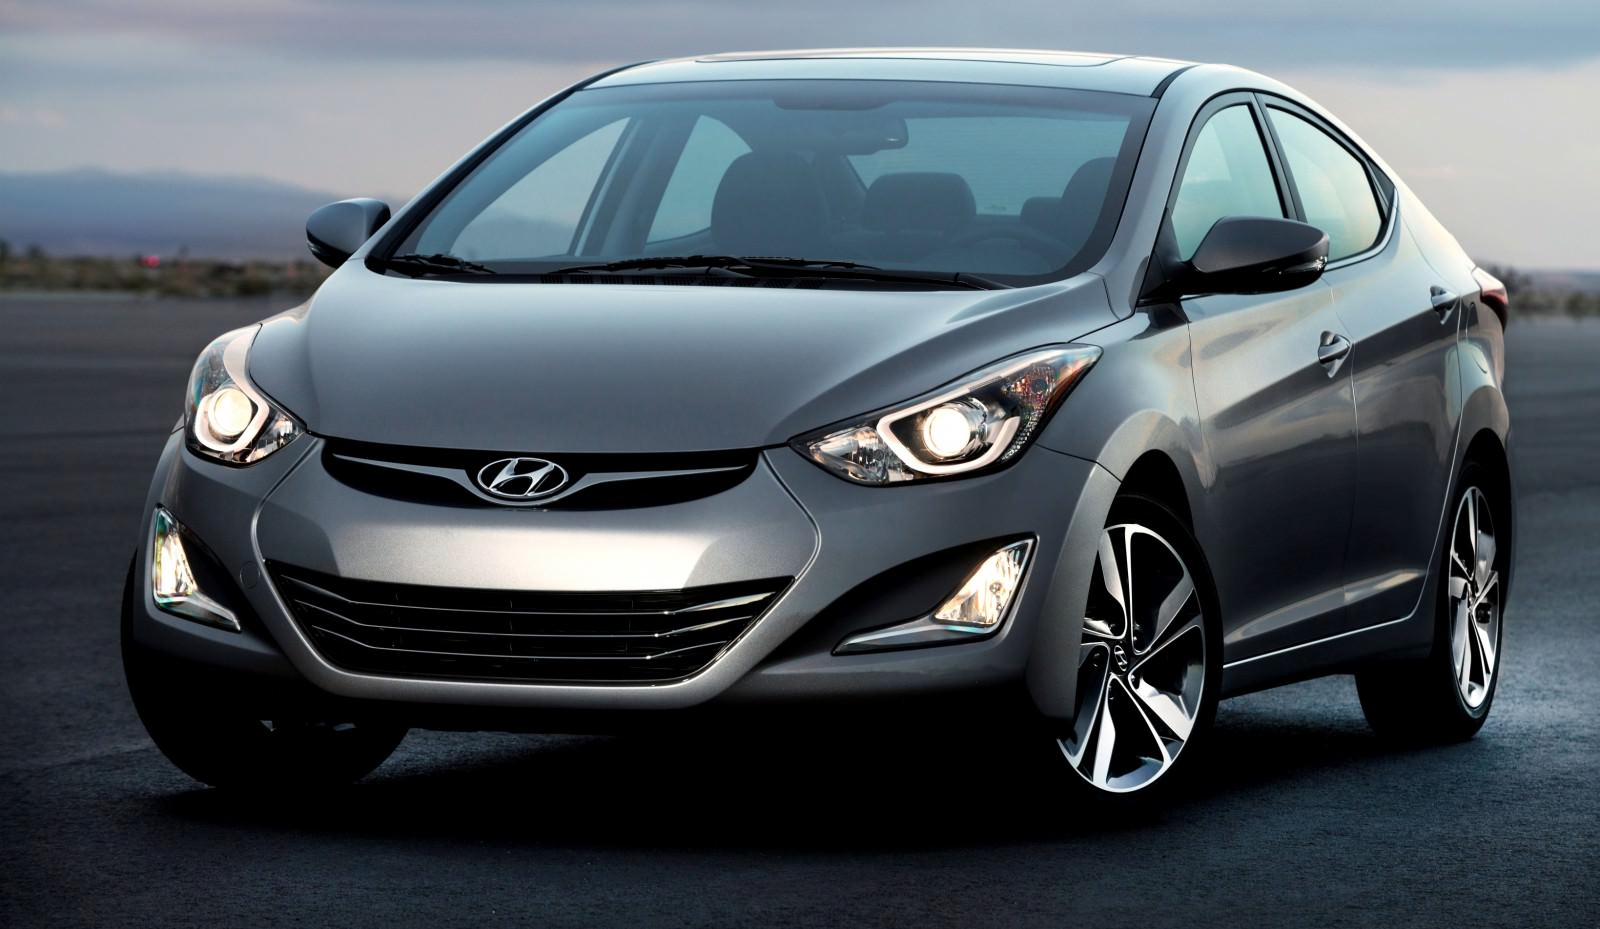 2015 Hyundai Elantra Sedan Brings Classy LED and Tech Updates  2